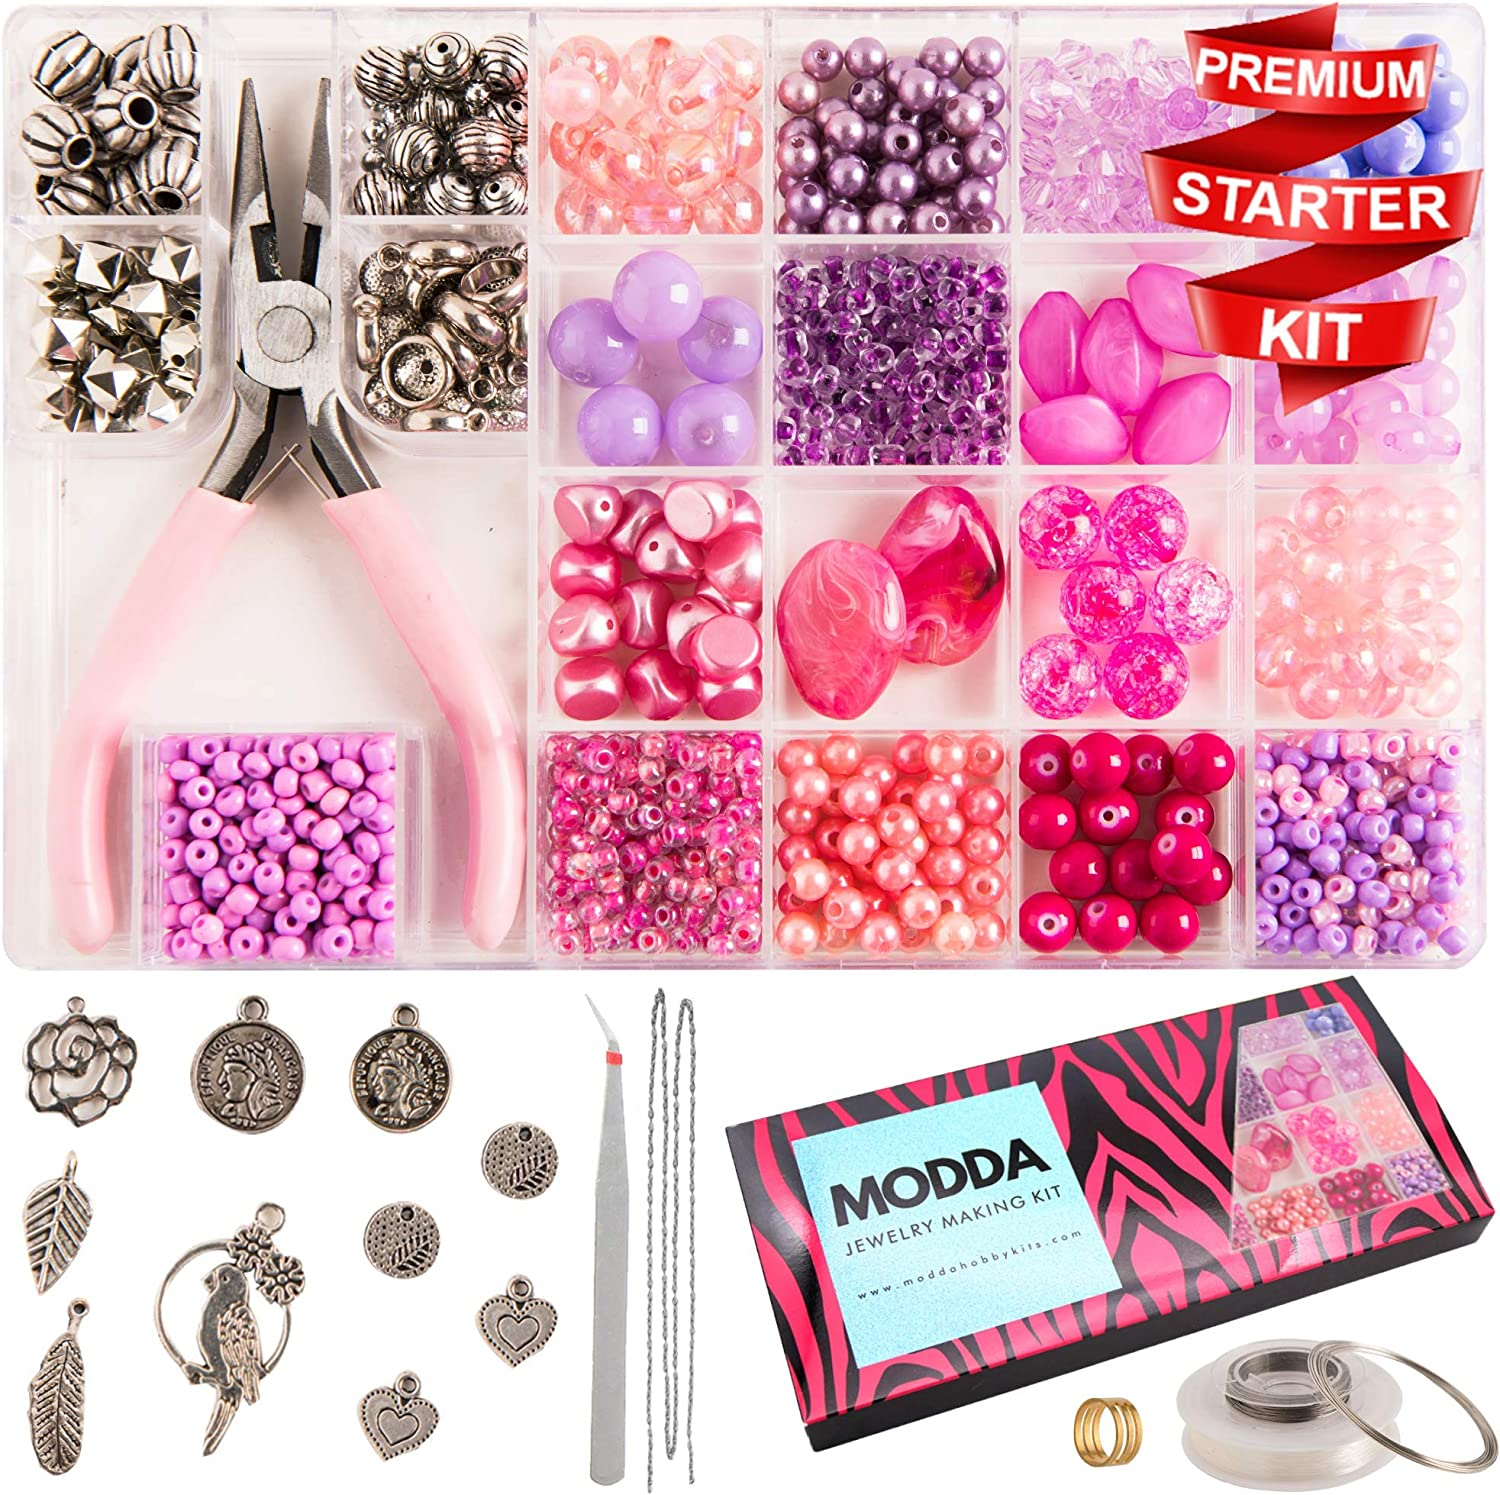 Modda Jewelry Making Supplies - Jewelry Making Kits for Adults, Teens, Girls, Beginners, Women - Includes Instructions, Tools, Beads, Charms for Necklace, Earring, Bracelet Making Kit - Pink Set